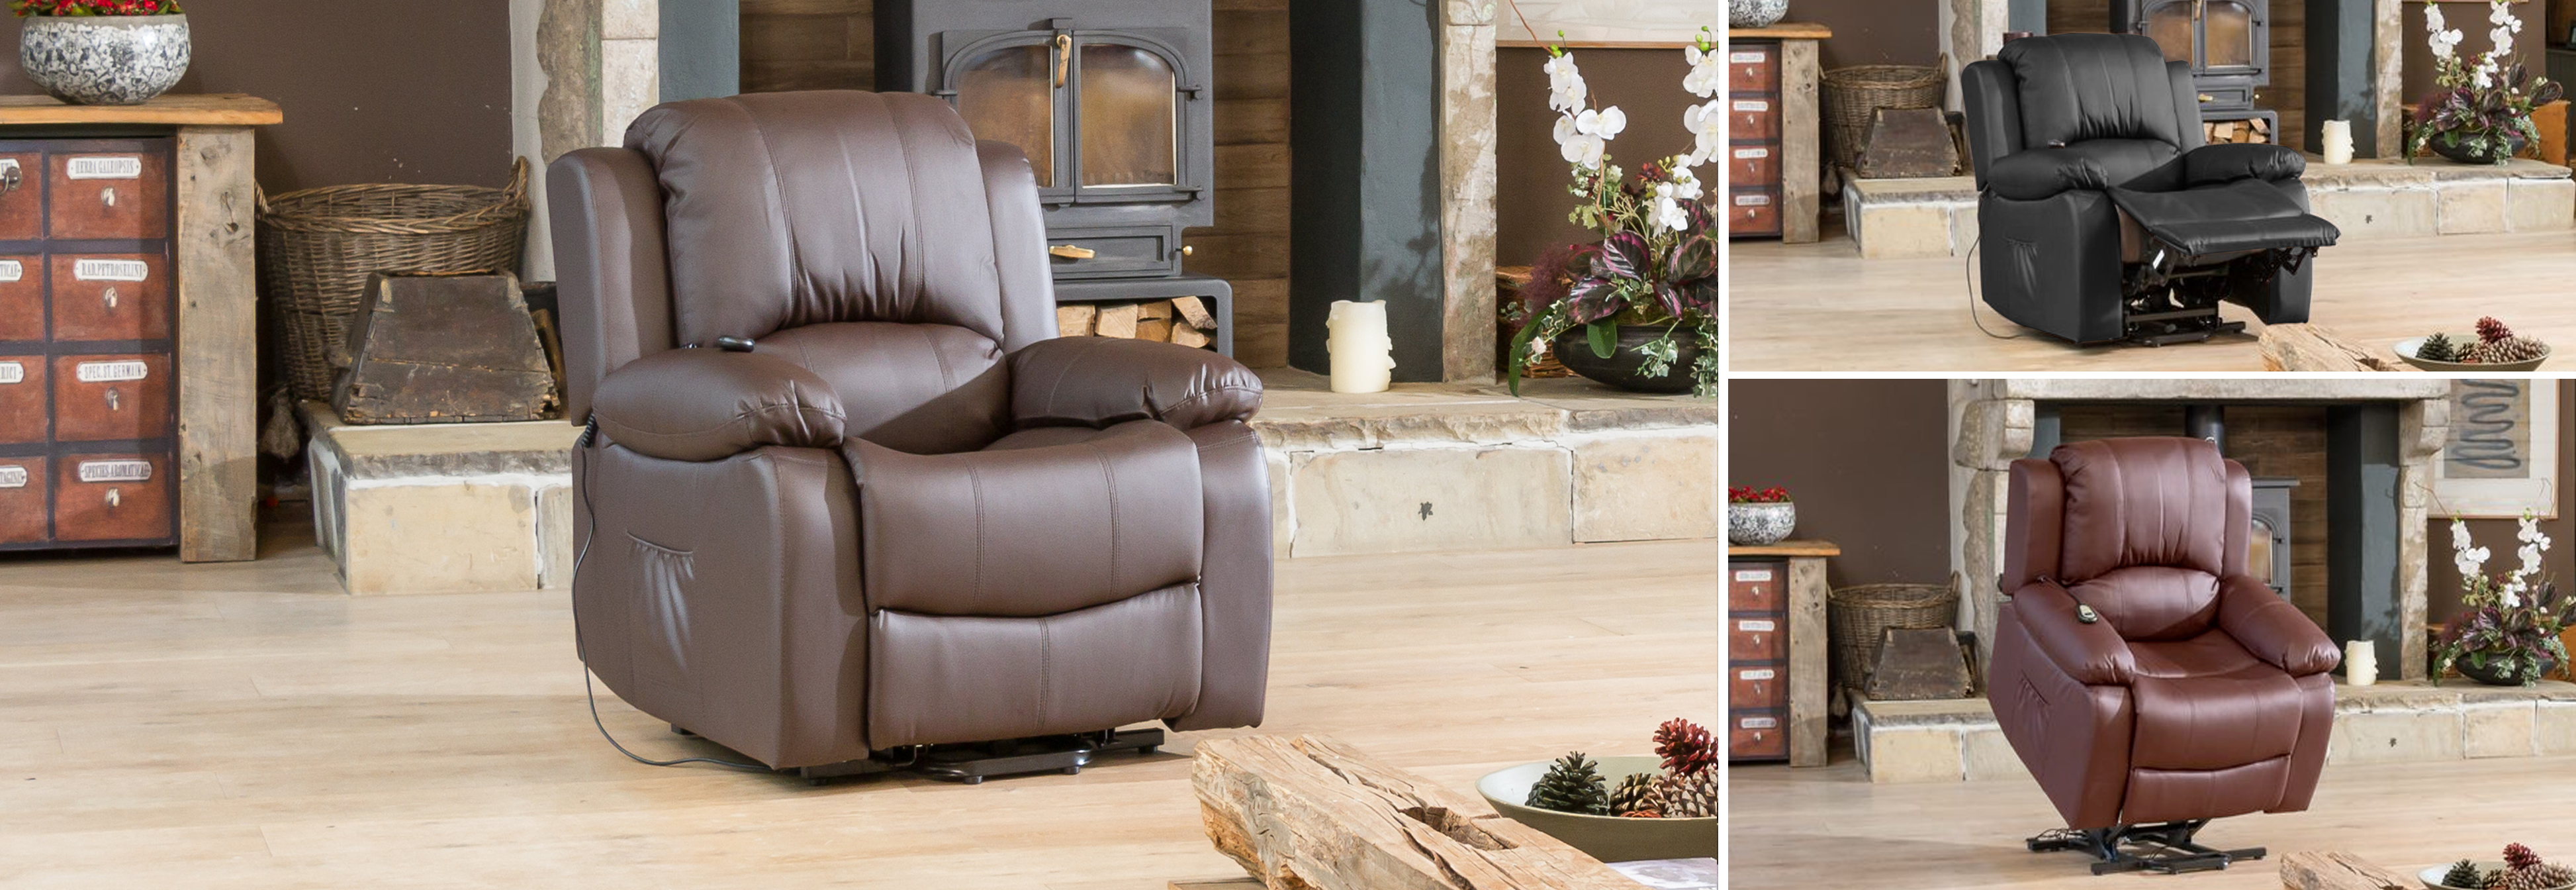 Burghley Riser Recliner with Massage and Heat brown